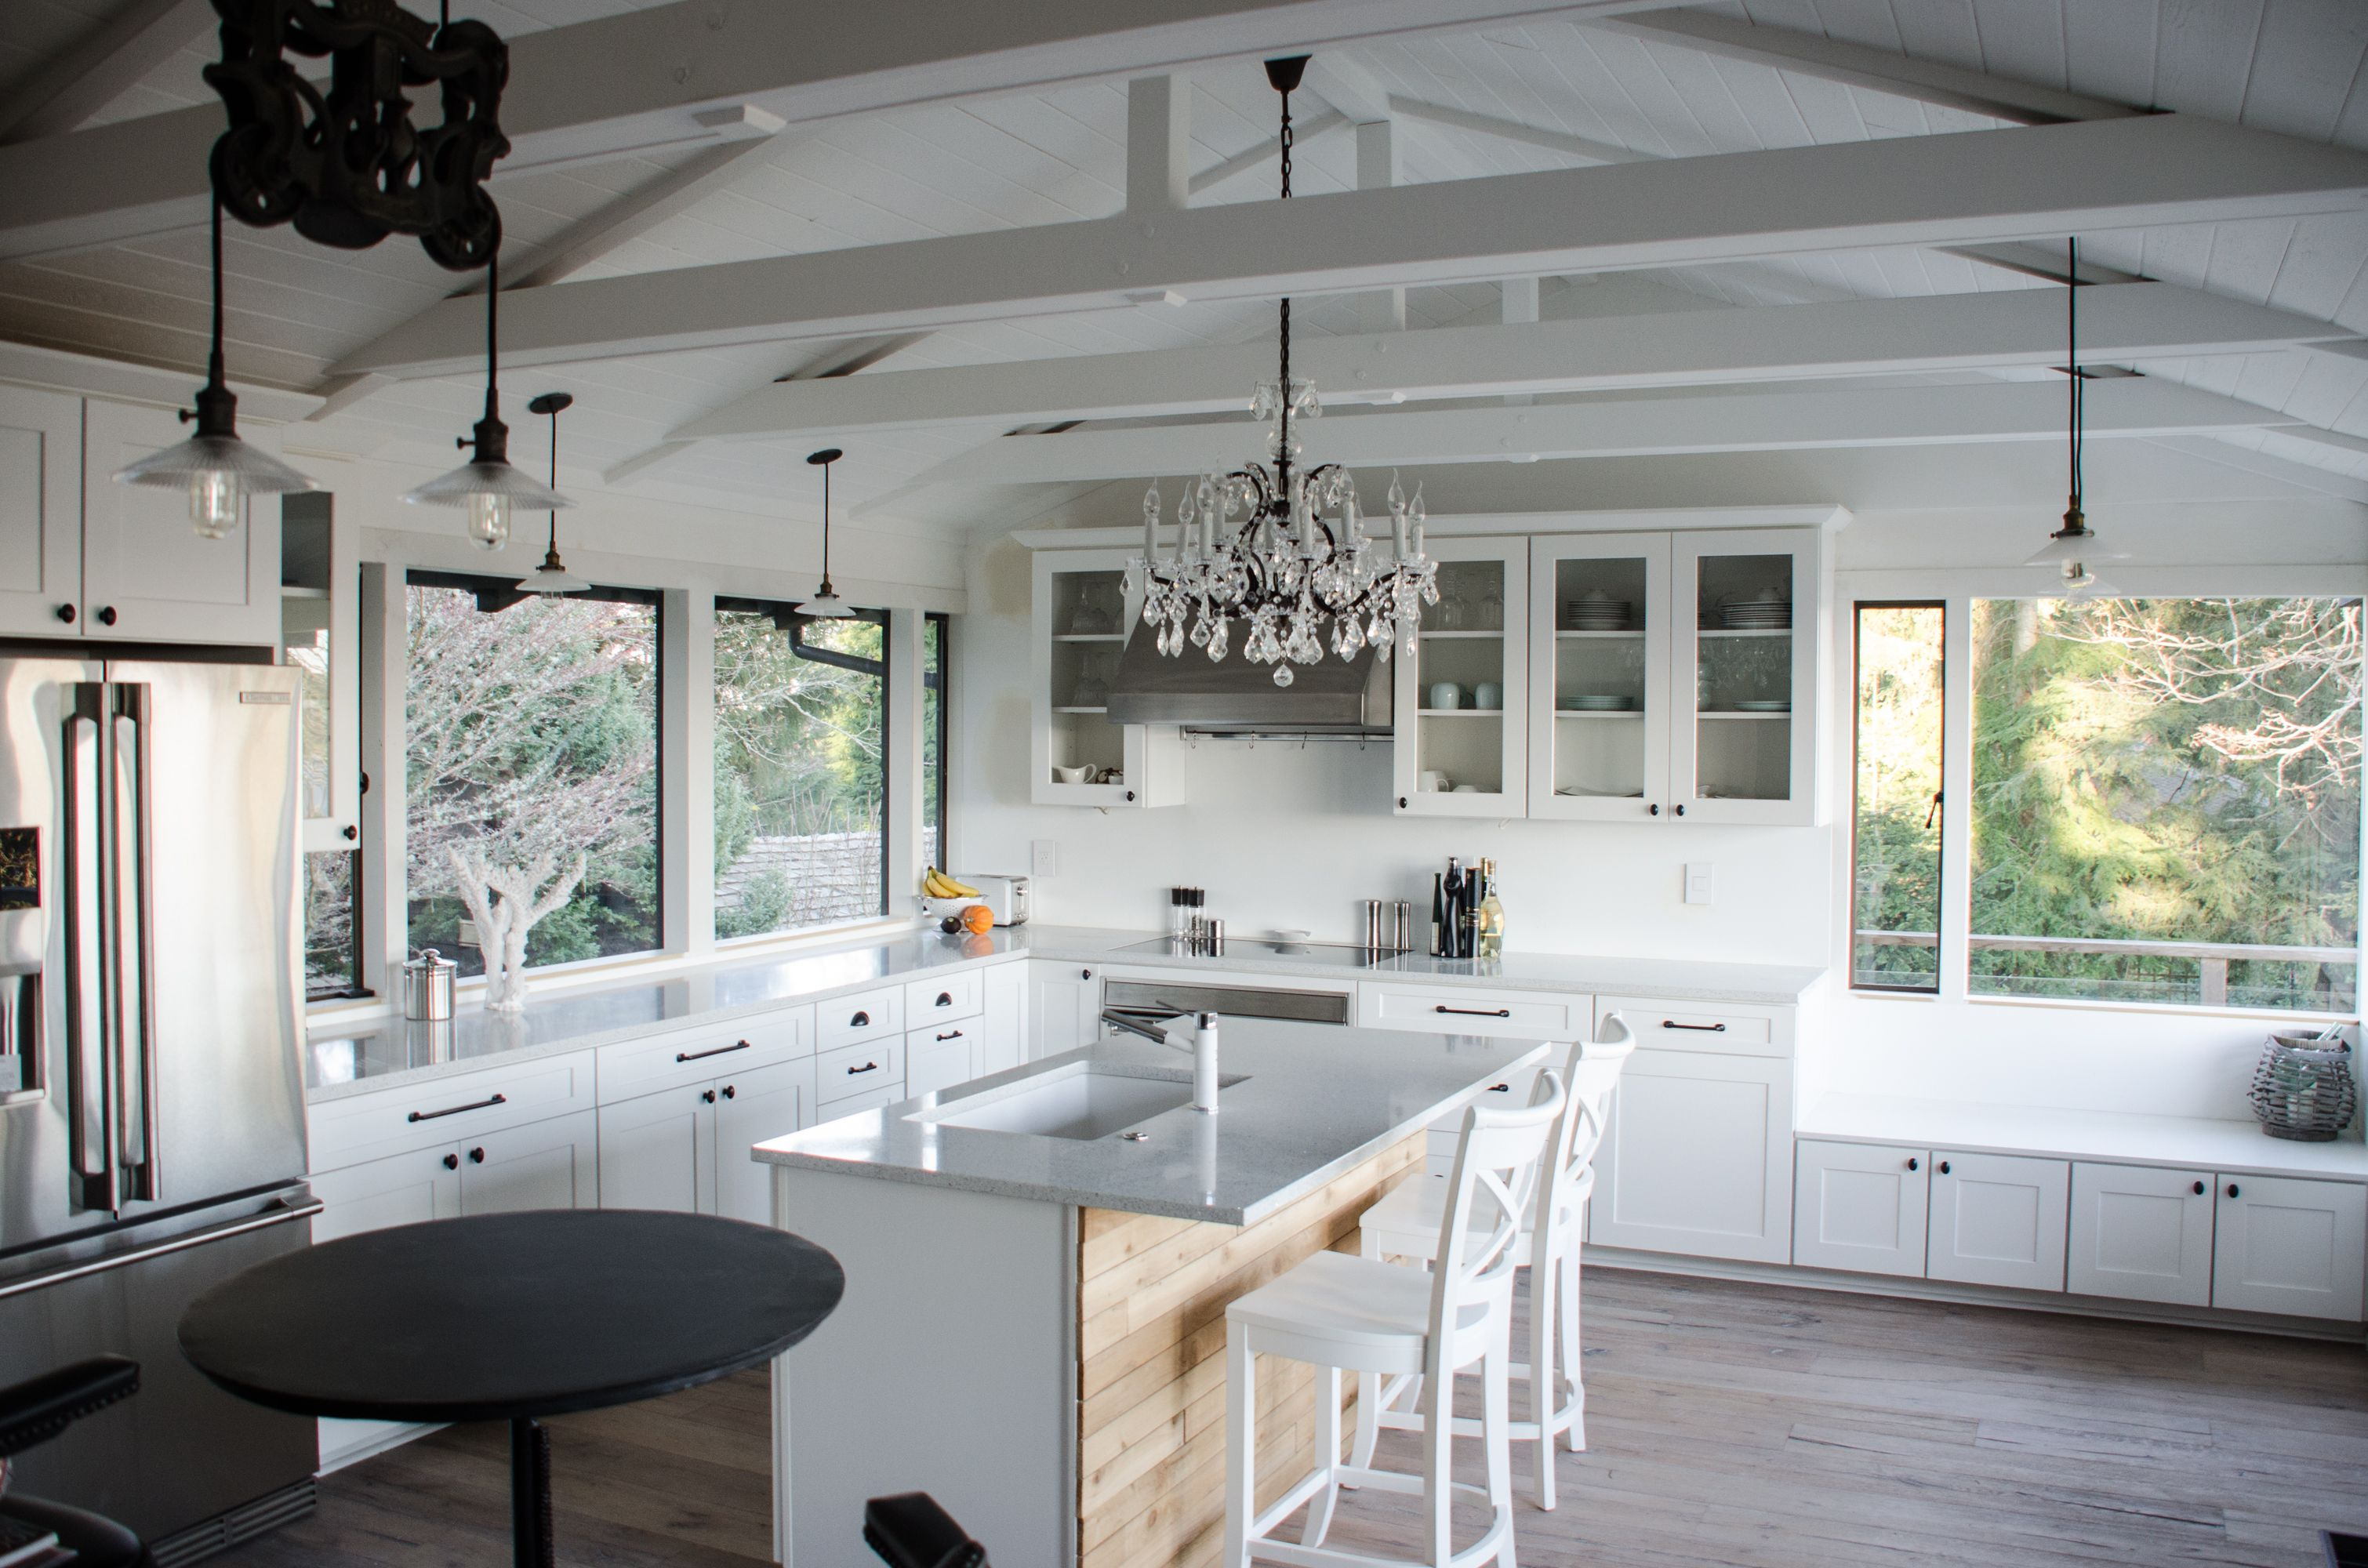 Épinglé sur Lovely Kitchens